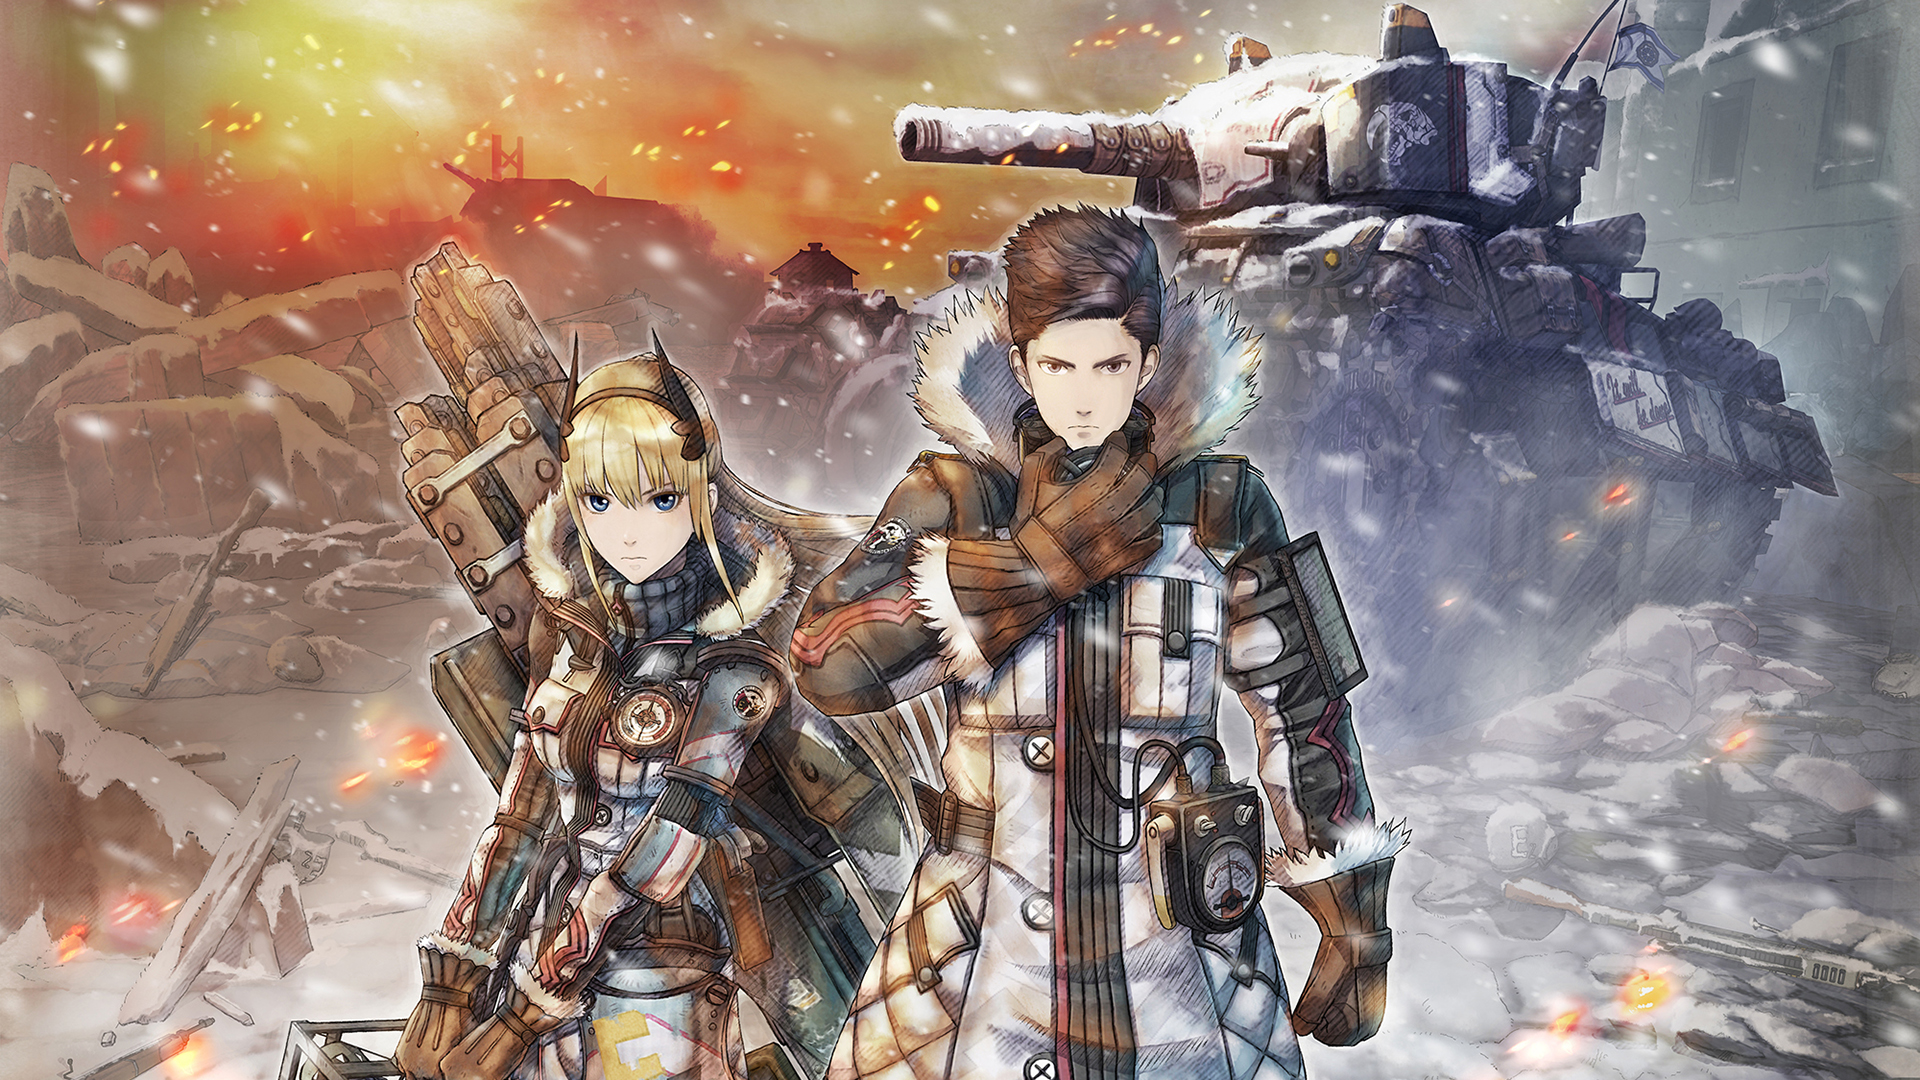 Valkyria Chronicles 4 10th Anniversary Memorial Pack